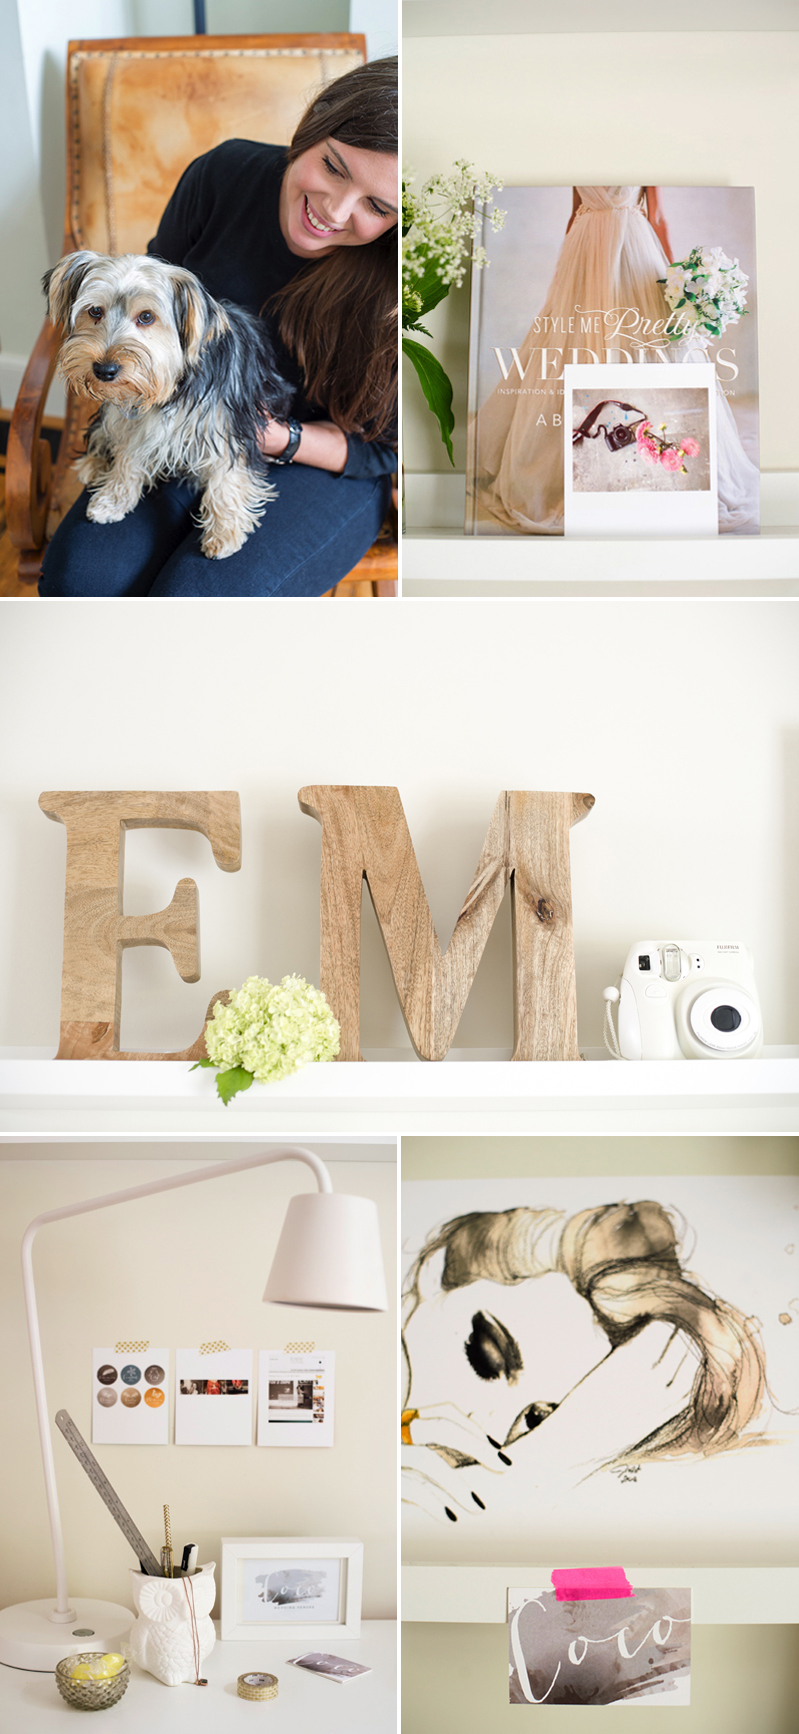 coco-wedding-venues-home-style-jemma-watts-photography-layer-105